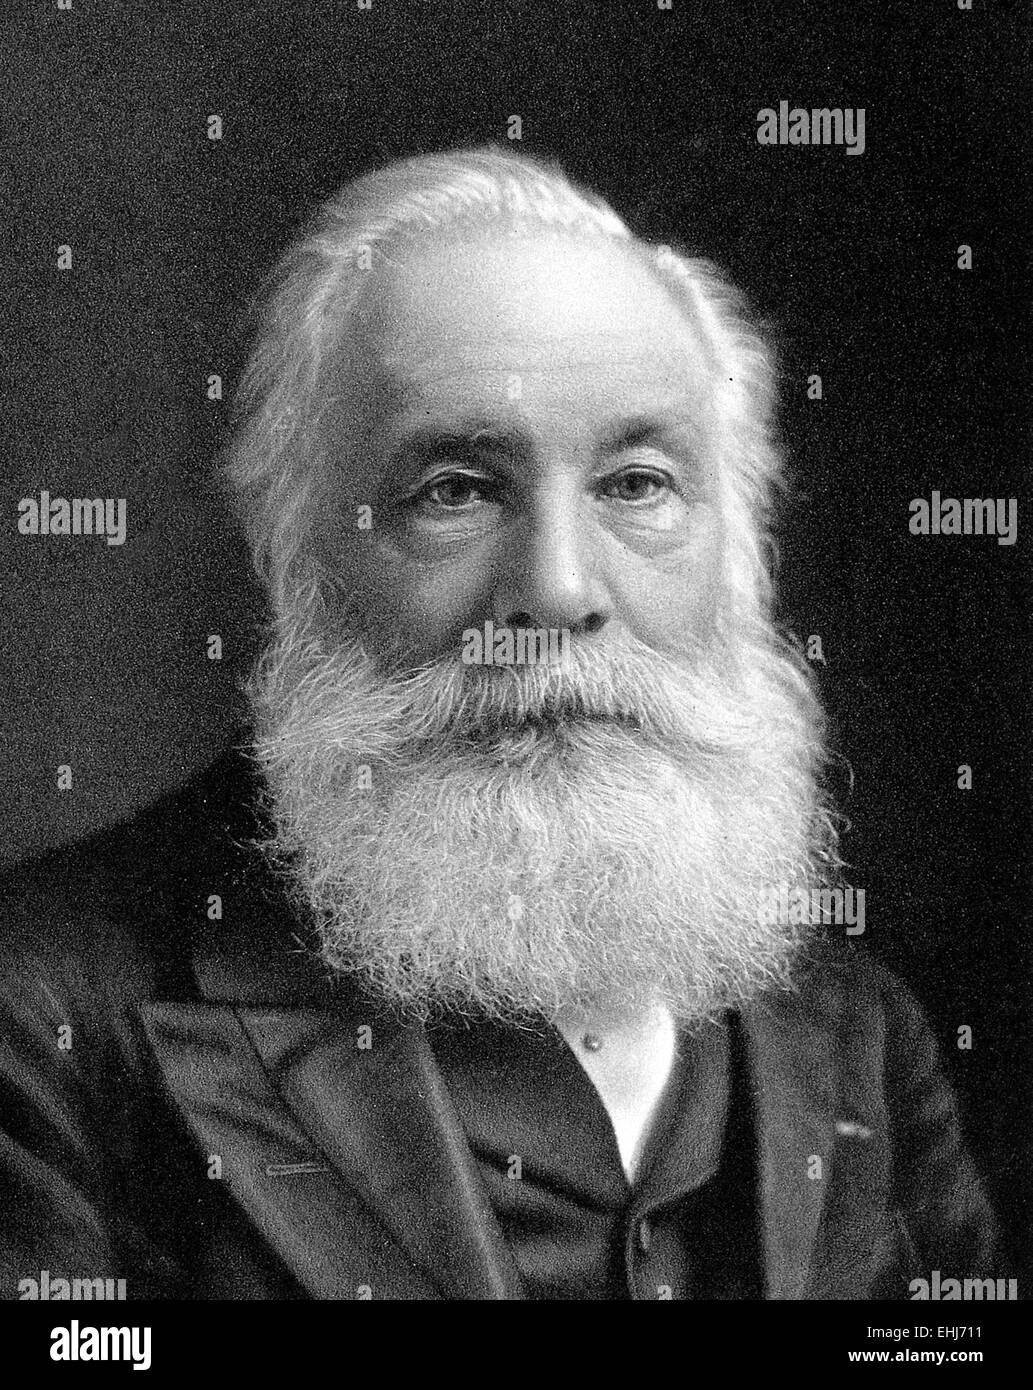 Sir William Henry Perkin English Chemist Best Known For His Accidental Discovery At The Age Of  Of The First Aniline Dye Mauveine